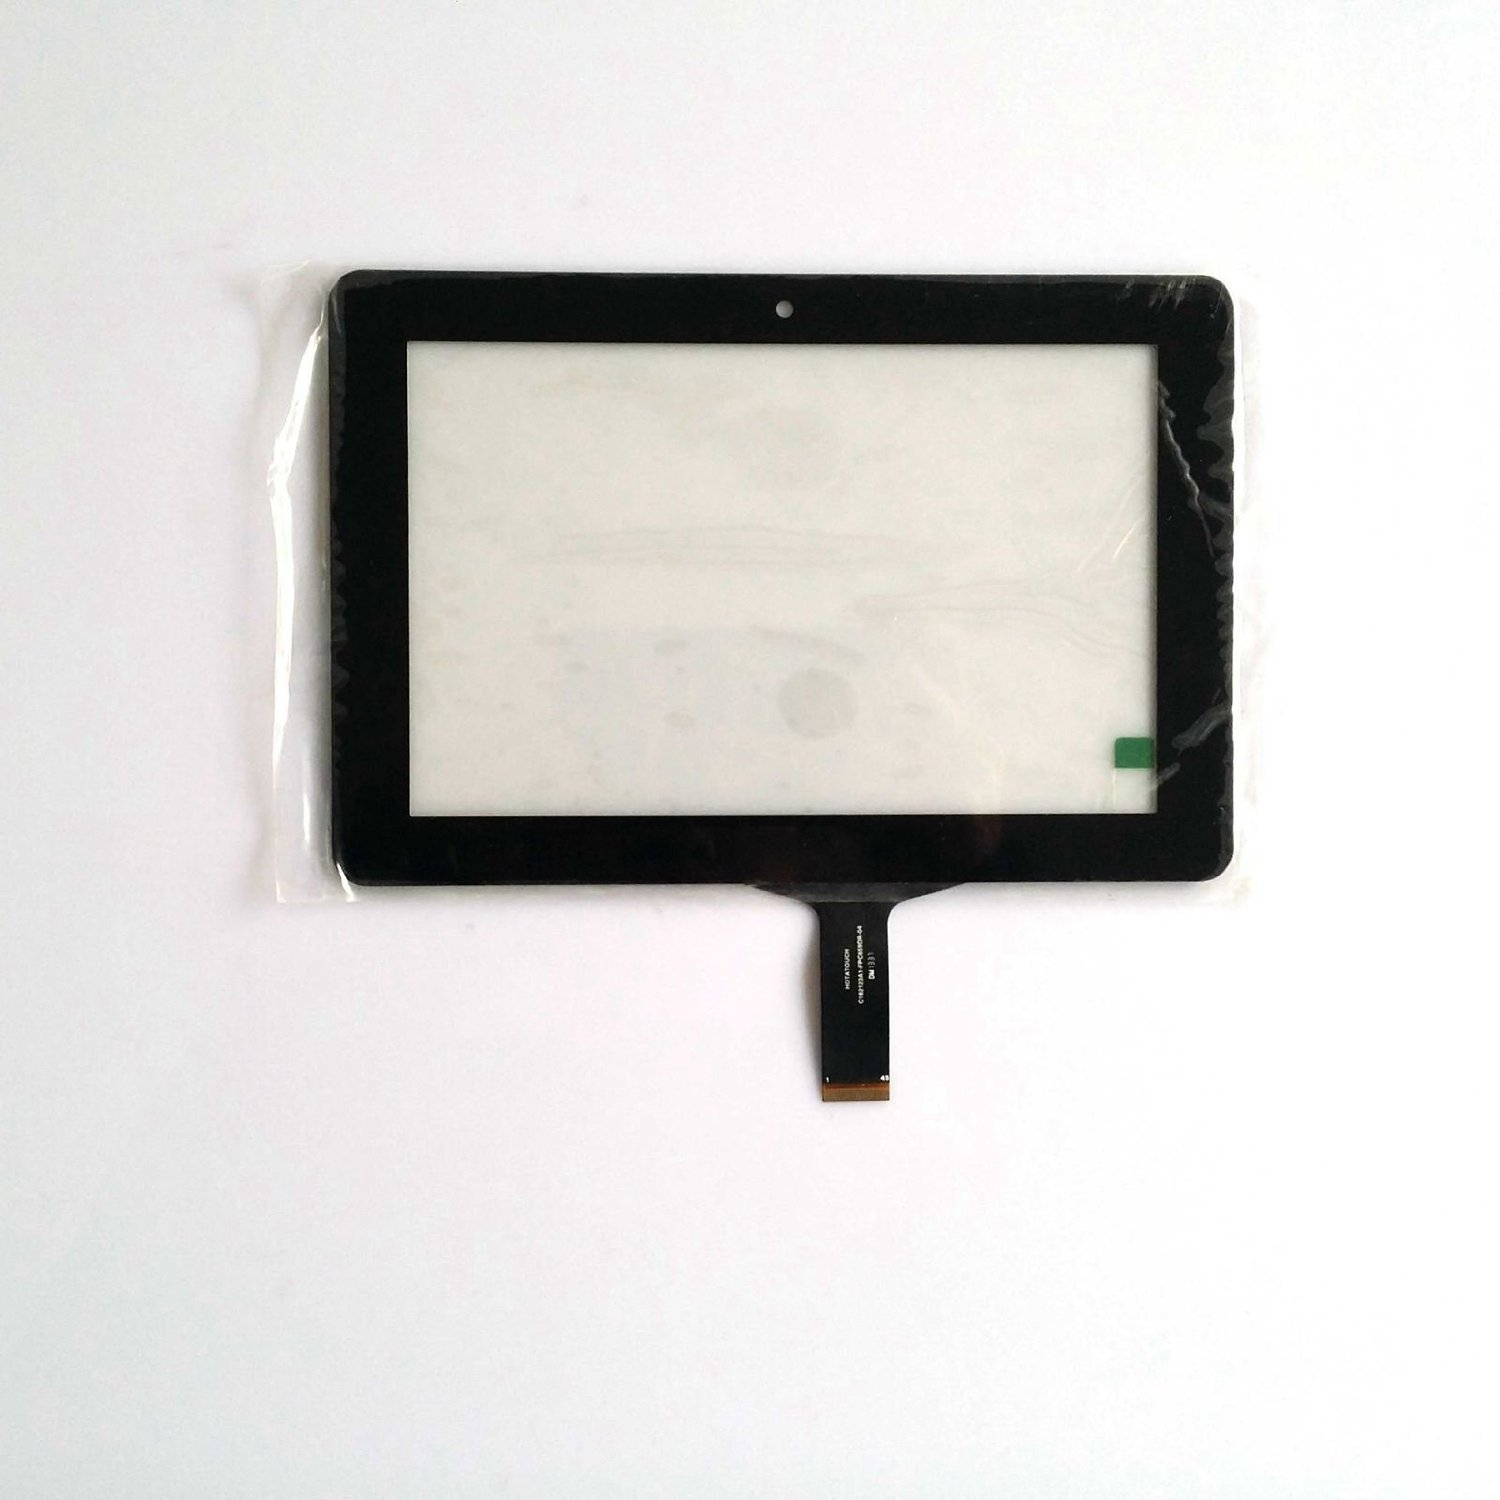 EUTOPING New 7 inch for ainol novo 7 Venus Quad Core touch screen panel Digitizer for tablet